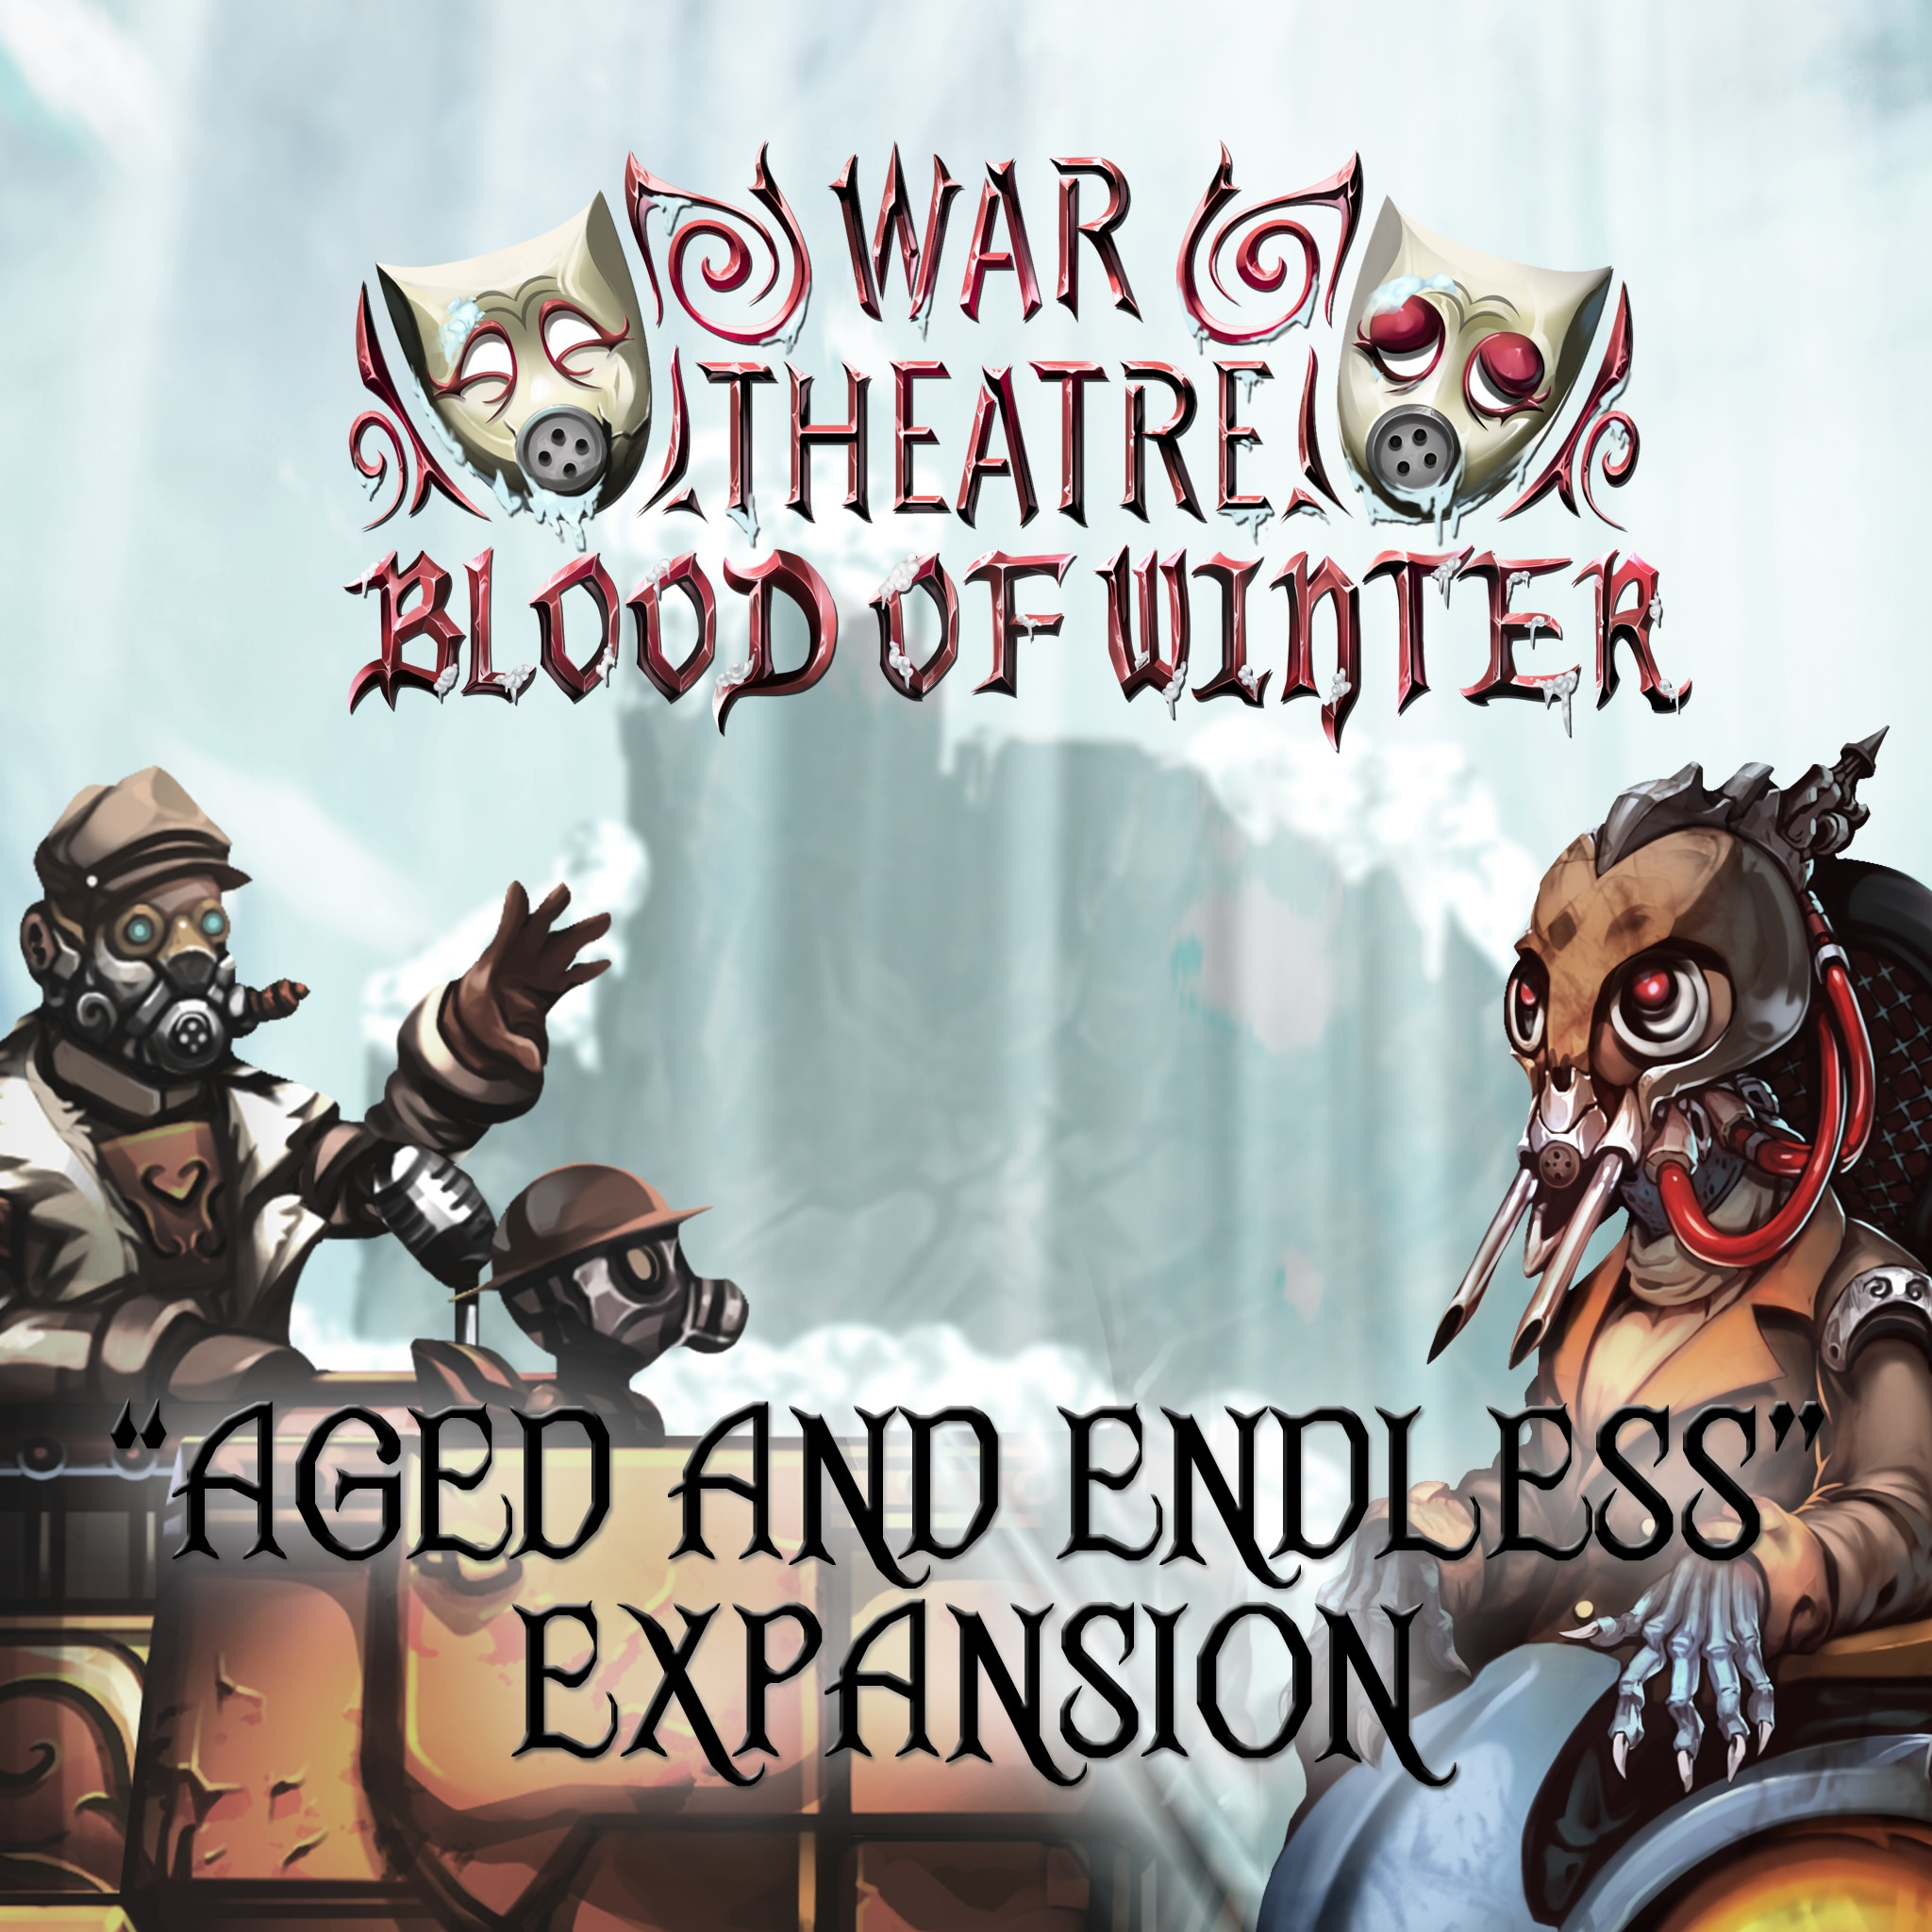 War Theatre: Blood of Winter - Aged and Endless